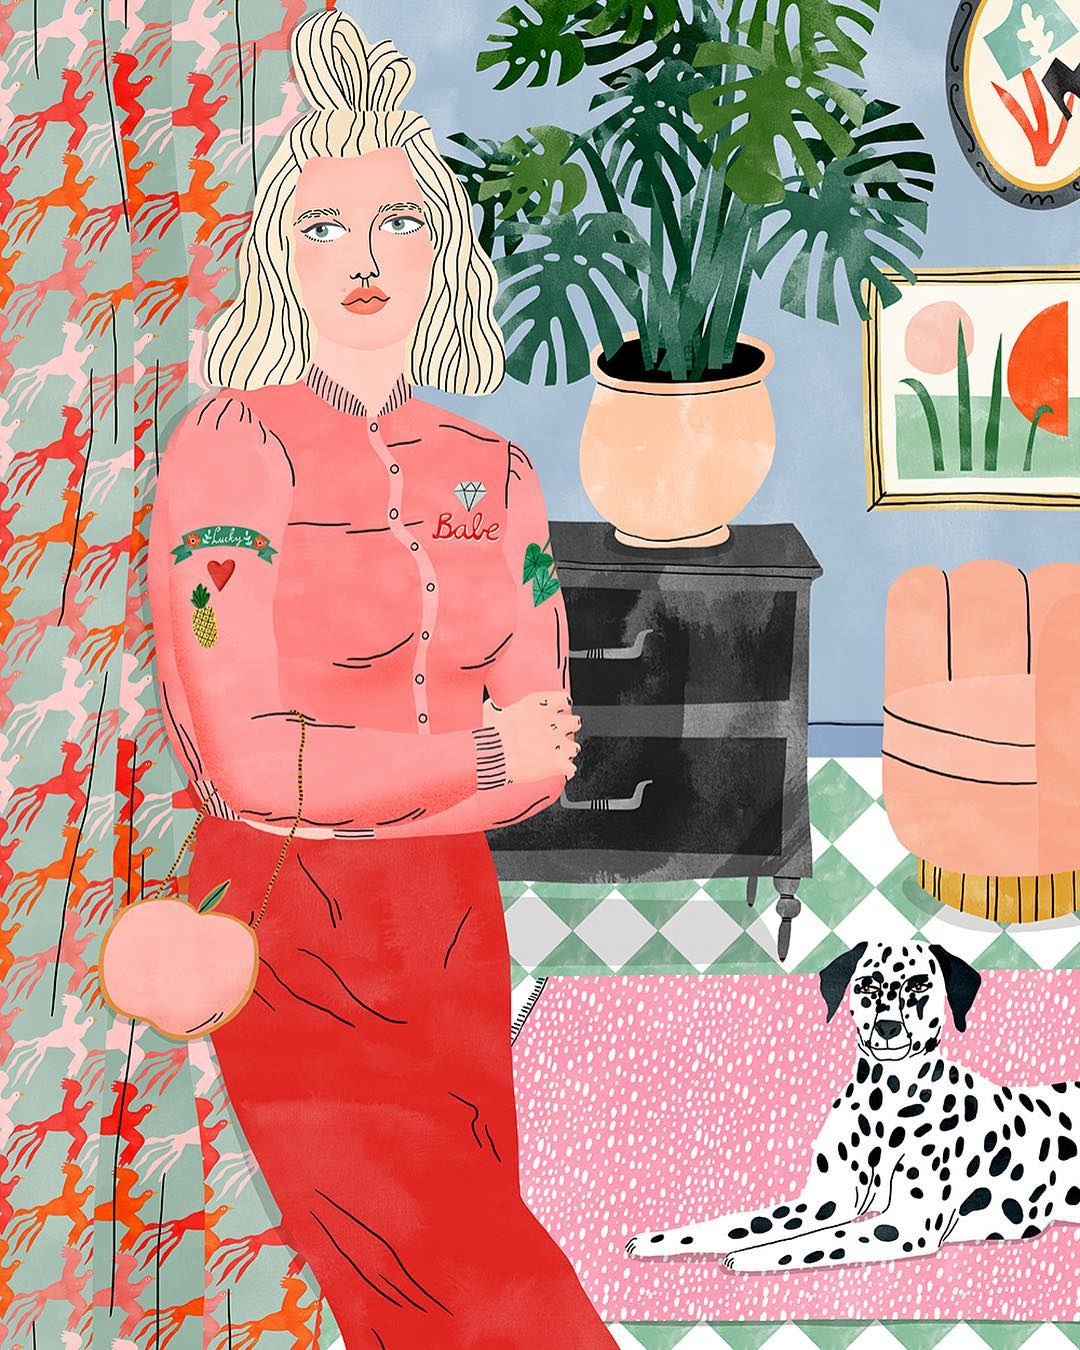 Bodil Jane, one of the best illustrators to follow on Instagram